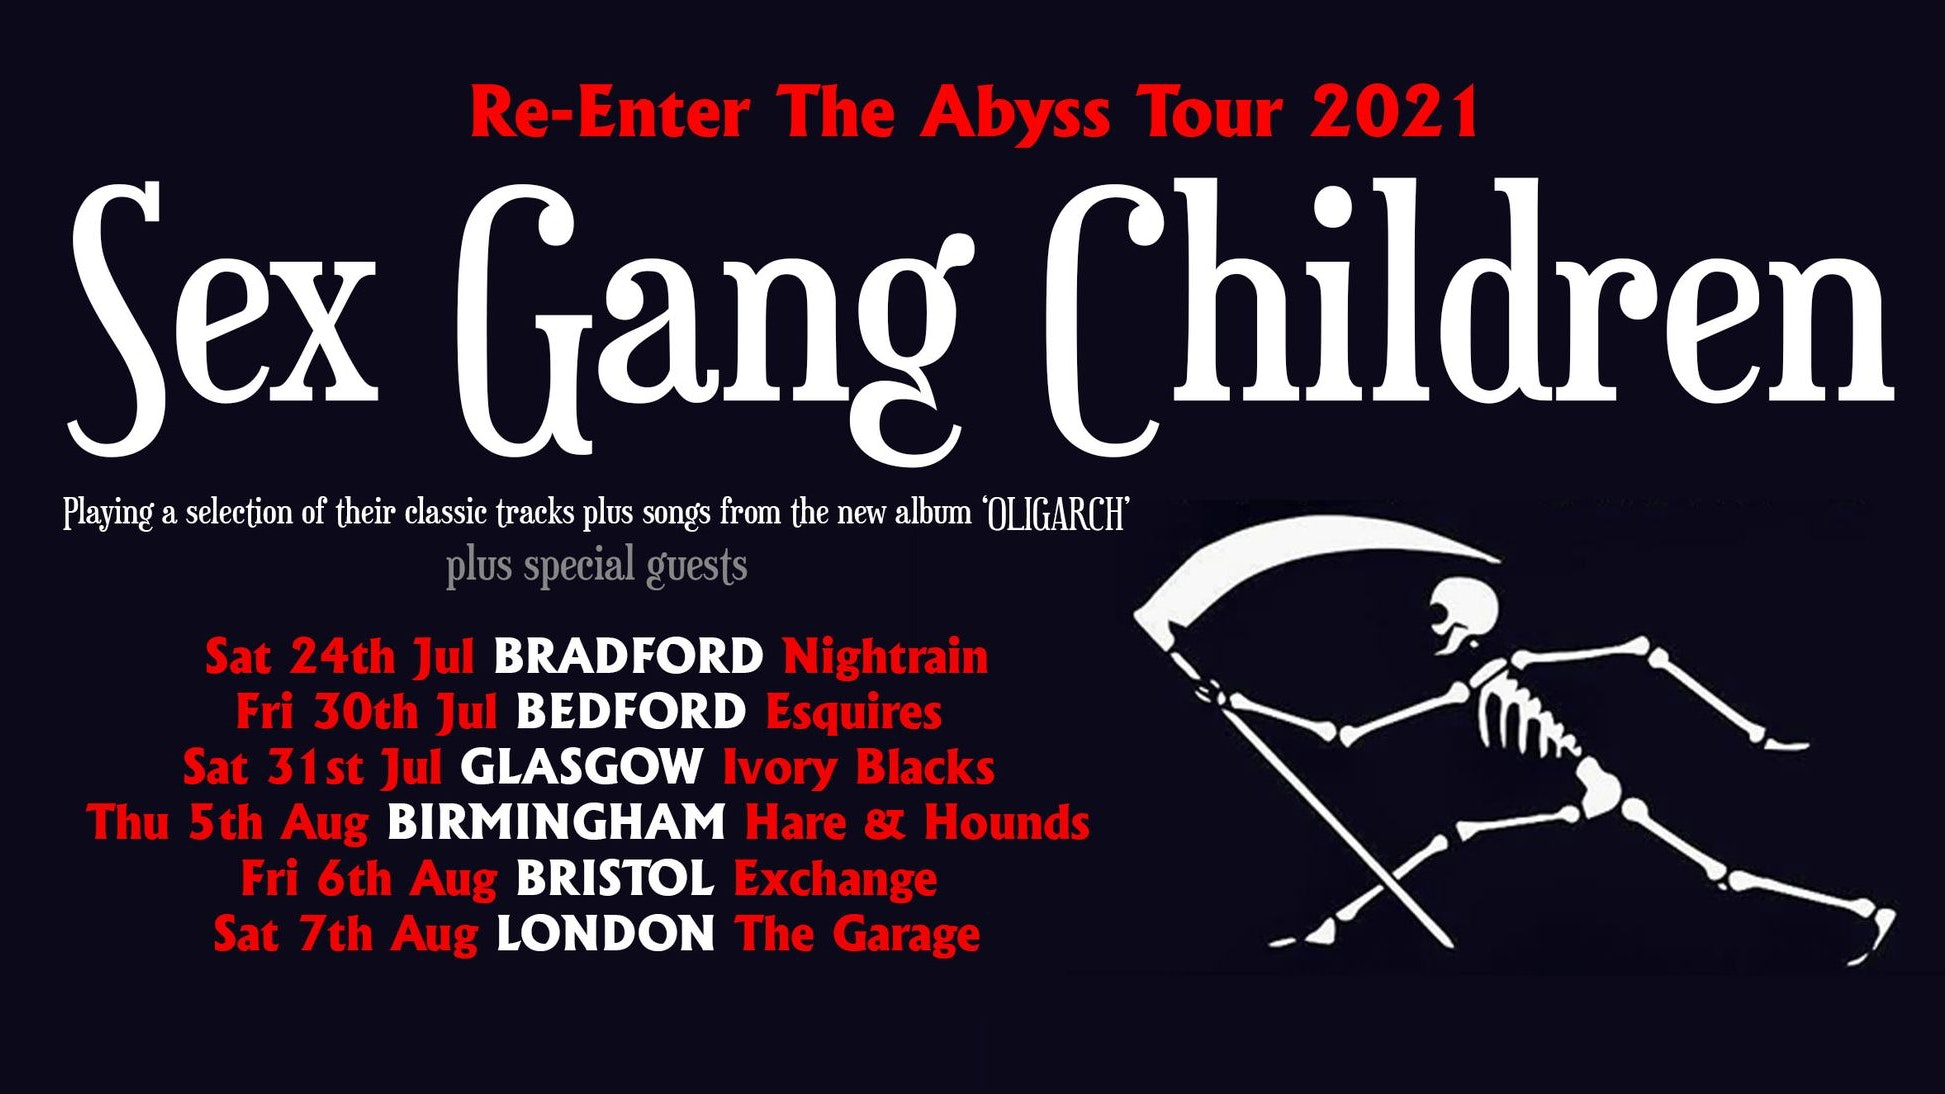 Sex Gang Children Re-Enter The Abyss Tour 2021 – Bradford